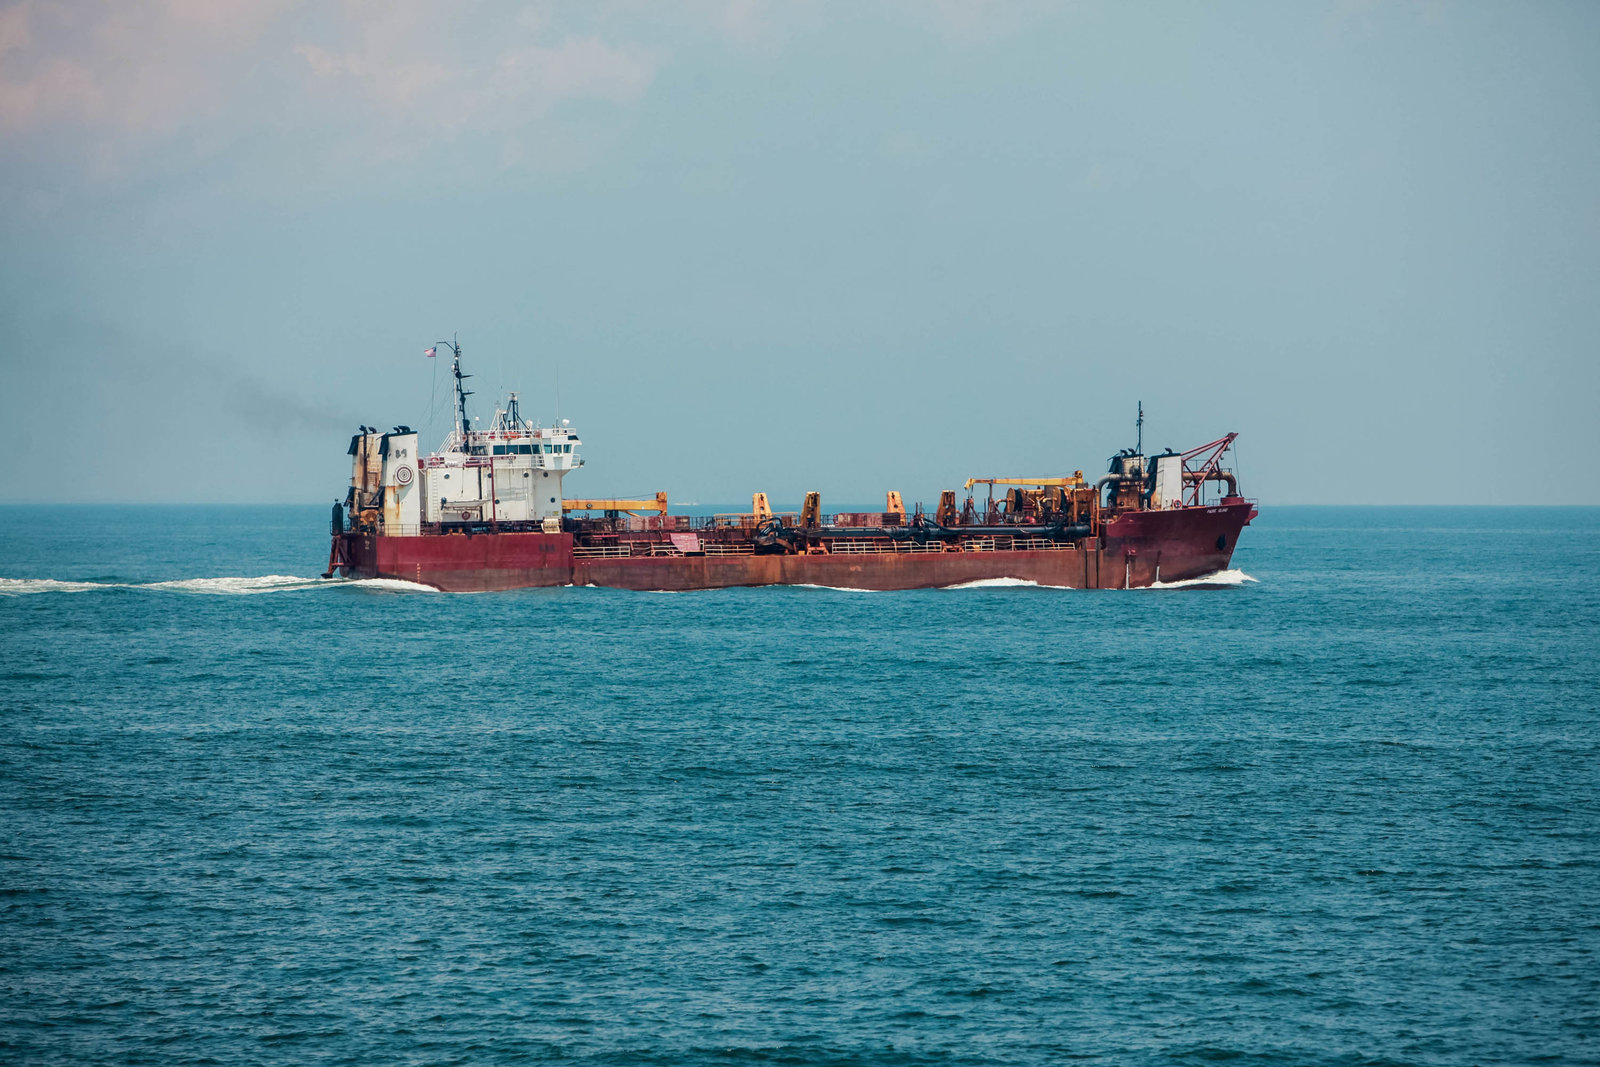 freight-ship-ocean-chesapeake-bay-bridge-tunnel-kate-timbers-photography-1640